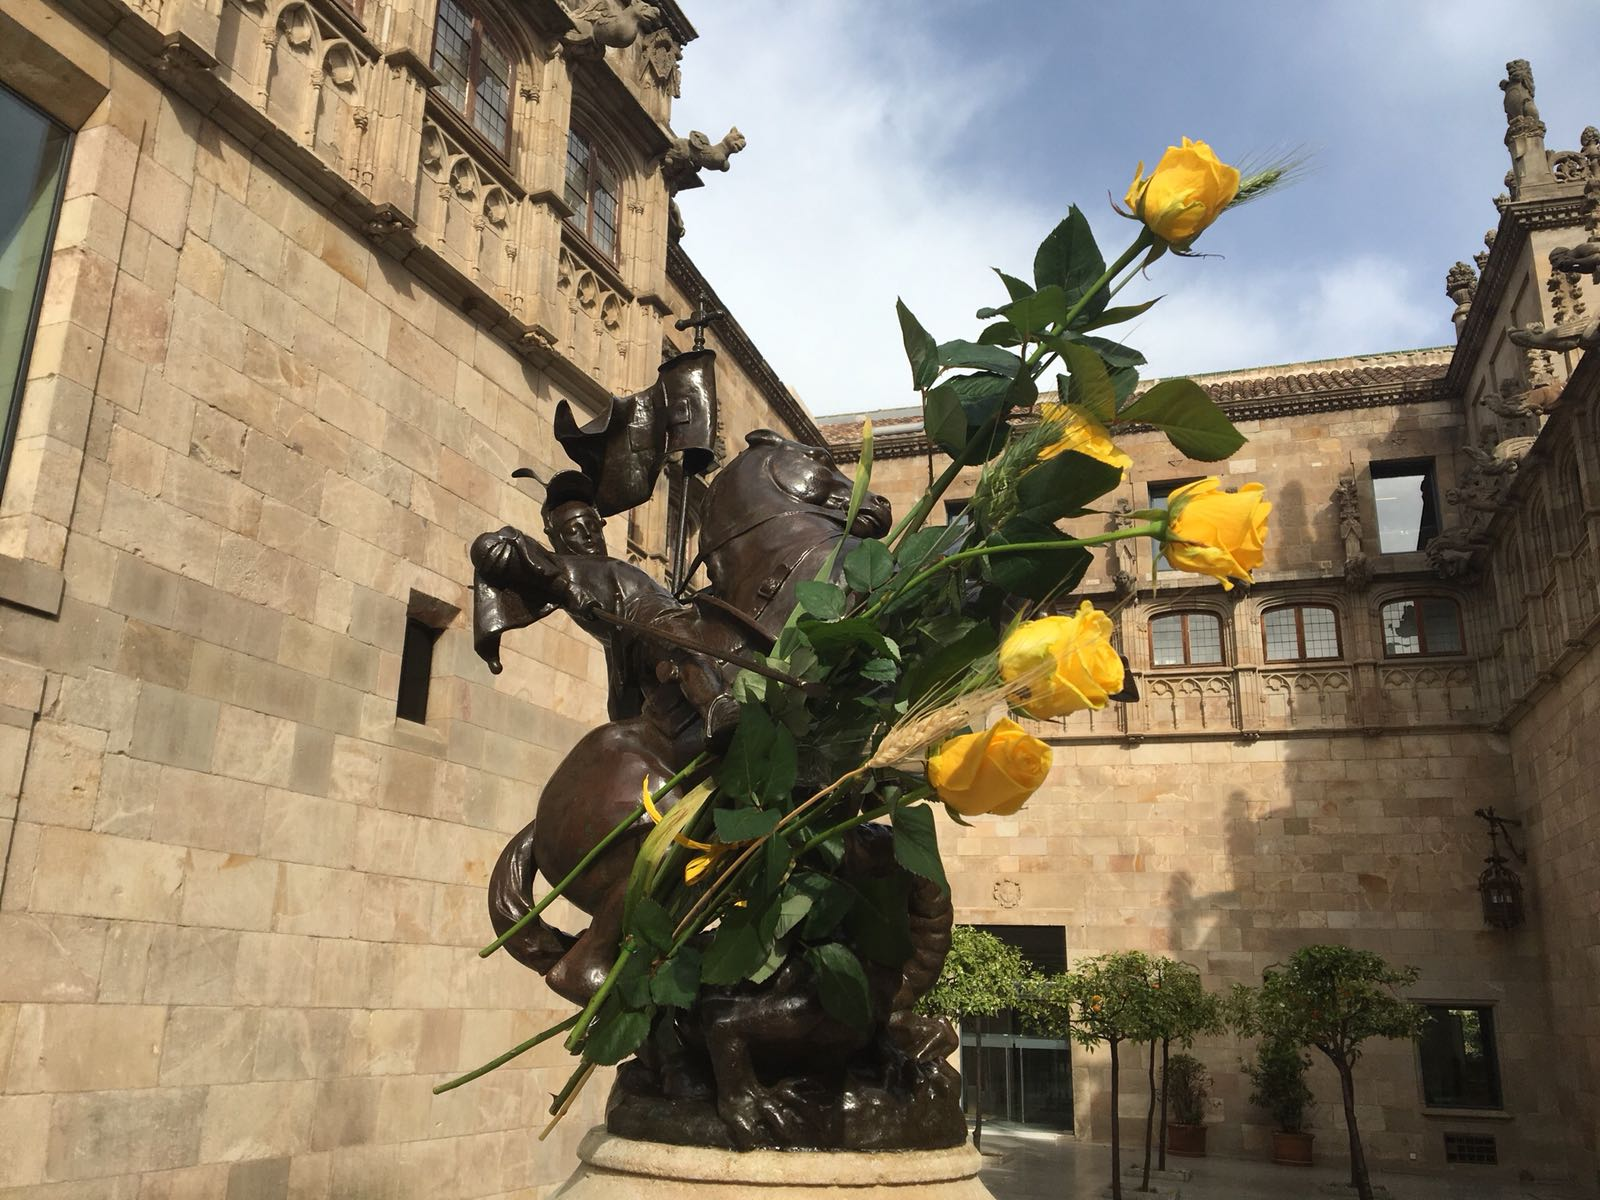 Catalan government palace surrounded by yellow roses